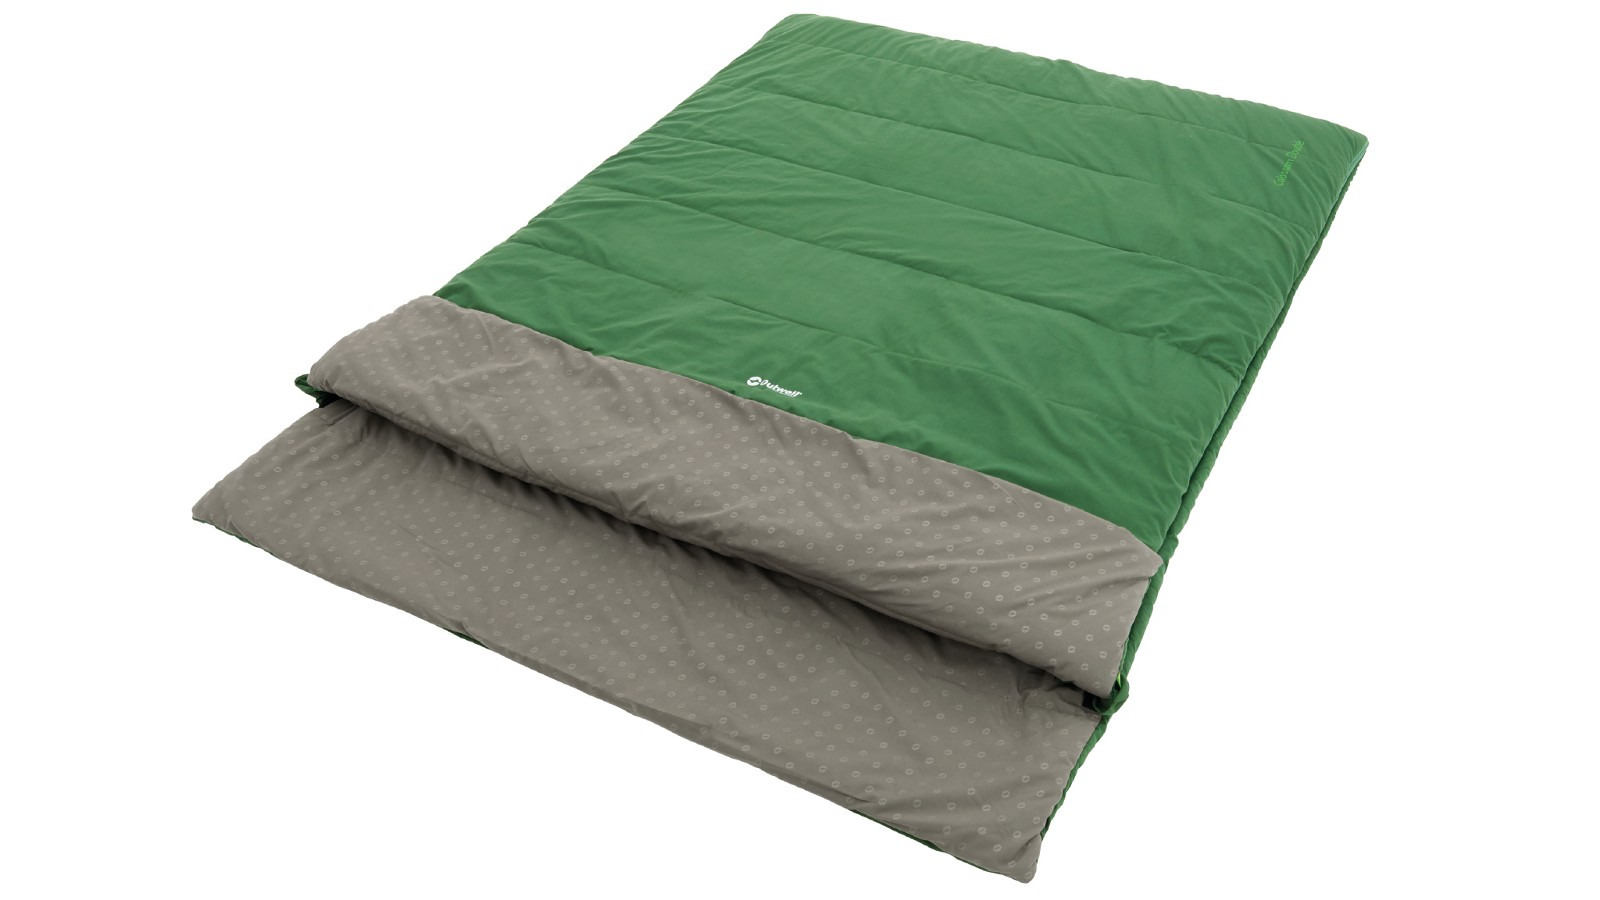 The New Outwell Colossum Double Sleeping bag